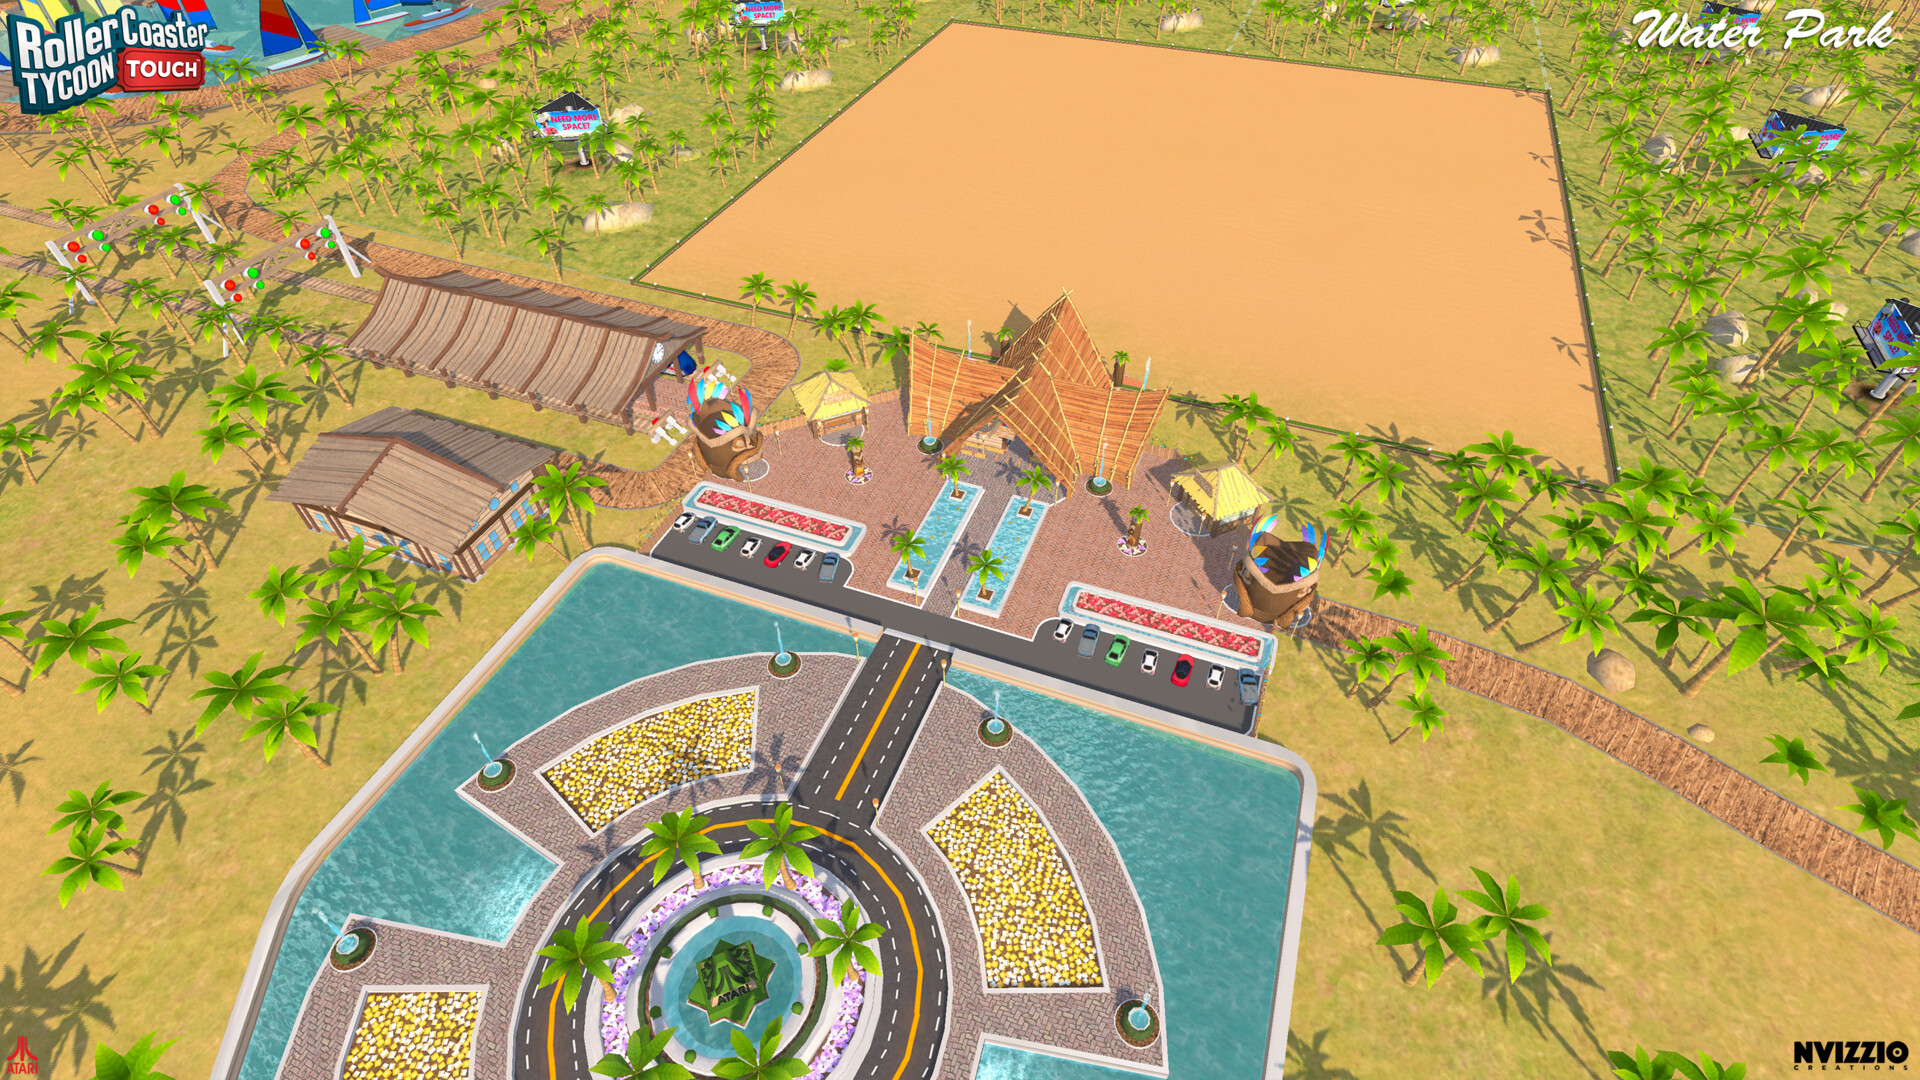 ArtStation - Roller Coaster Tycoon Touch - Waterpark map